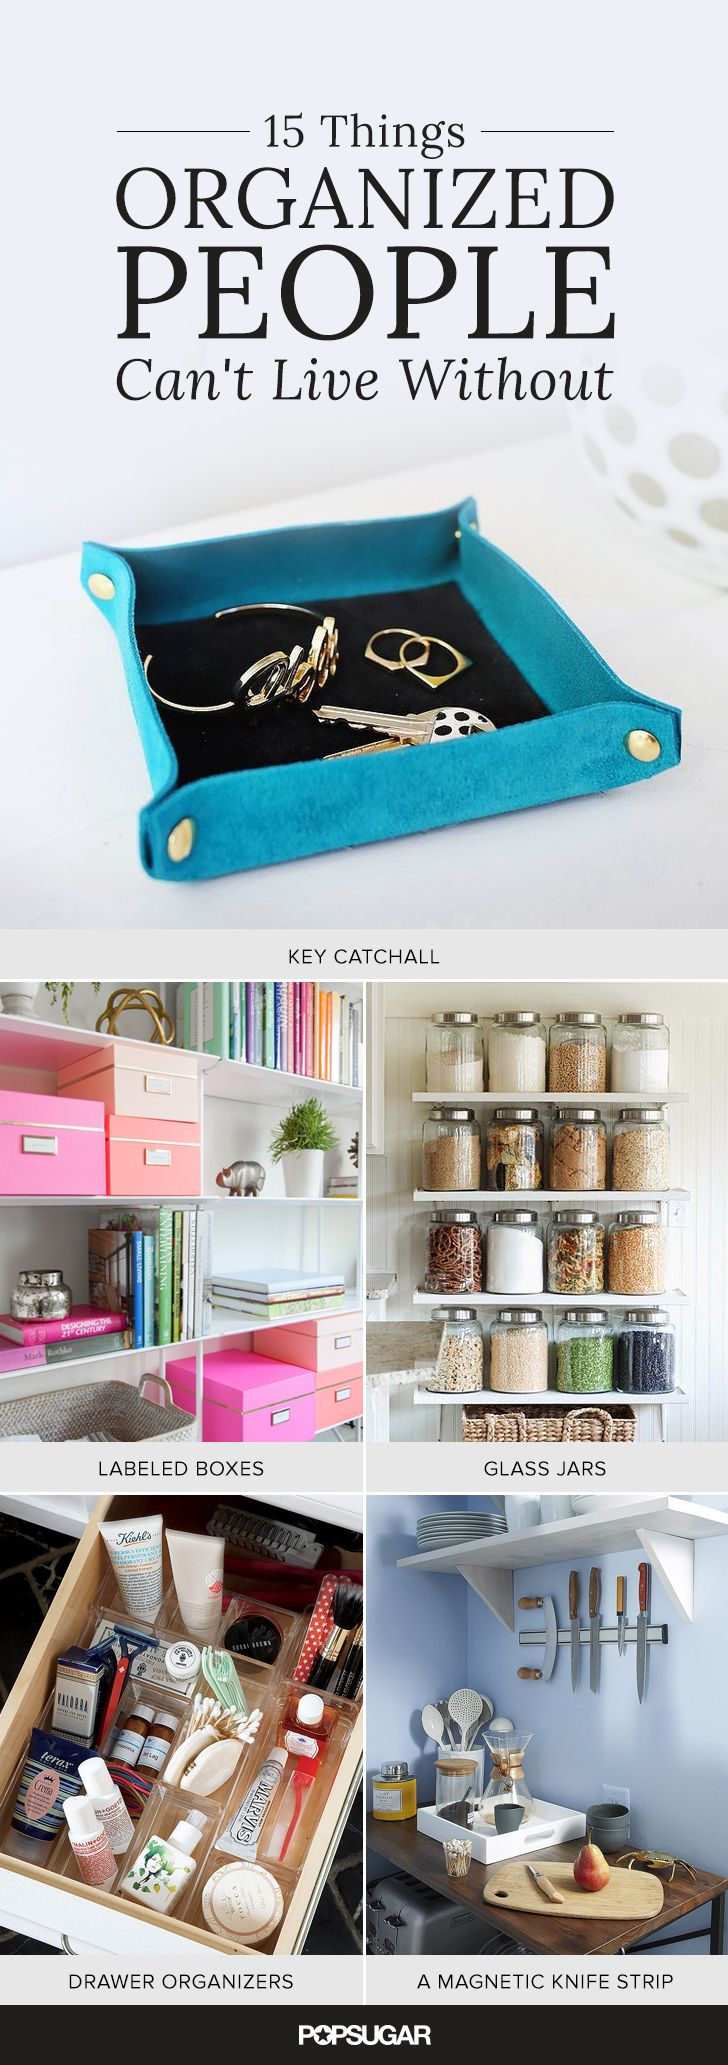 15 Things Organized People Can't Live Without